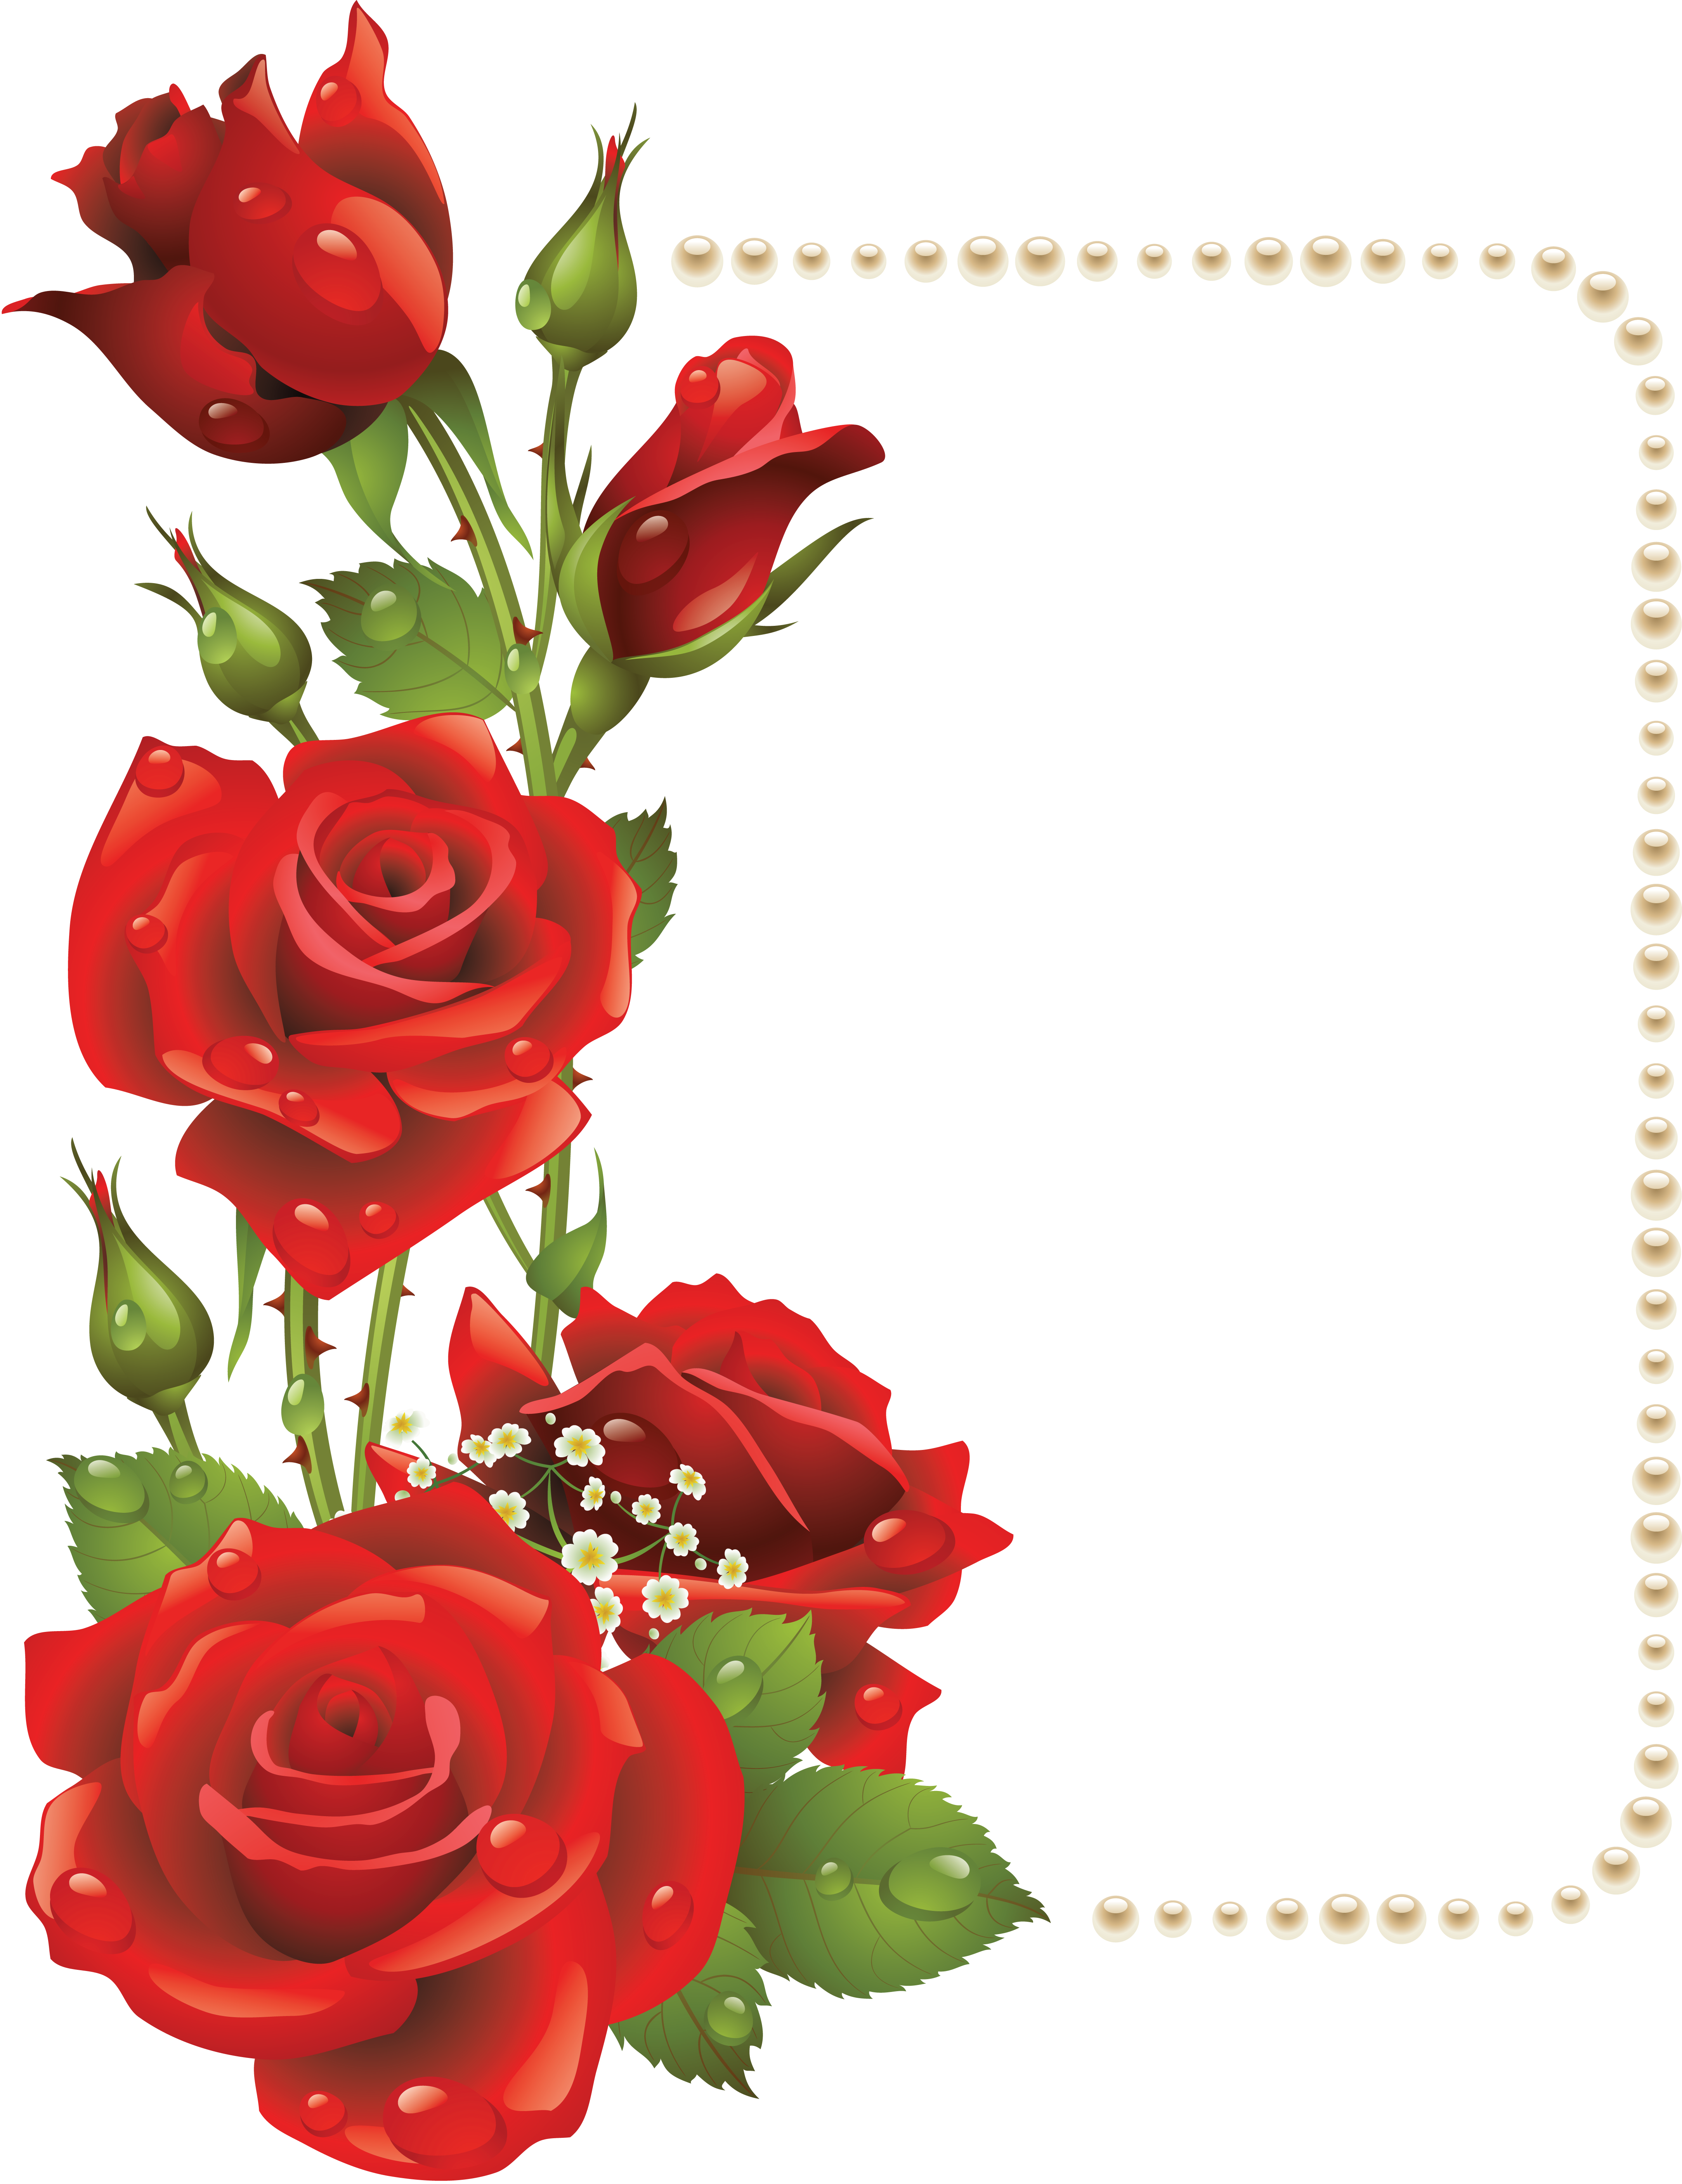 Large Transparent Frame With Red Roses And Pearls Png 4334 5629 Flower Backgrounds Red Roses Photoshop Backgrounds Free